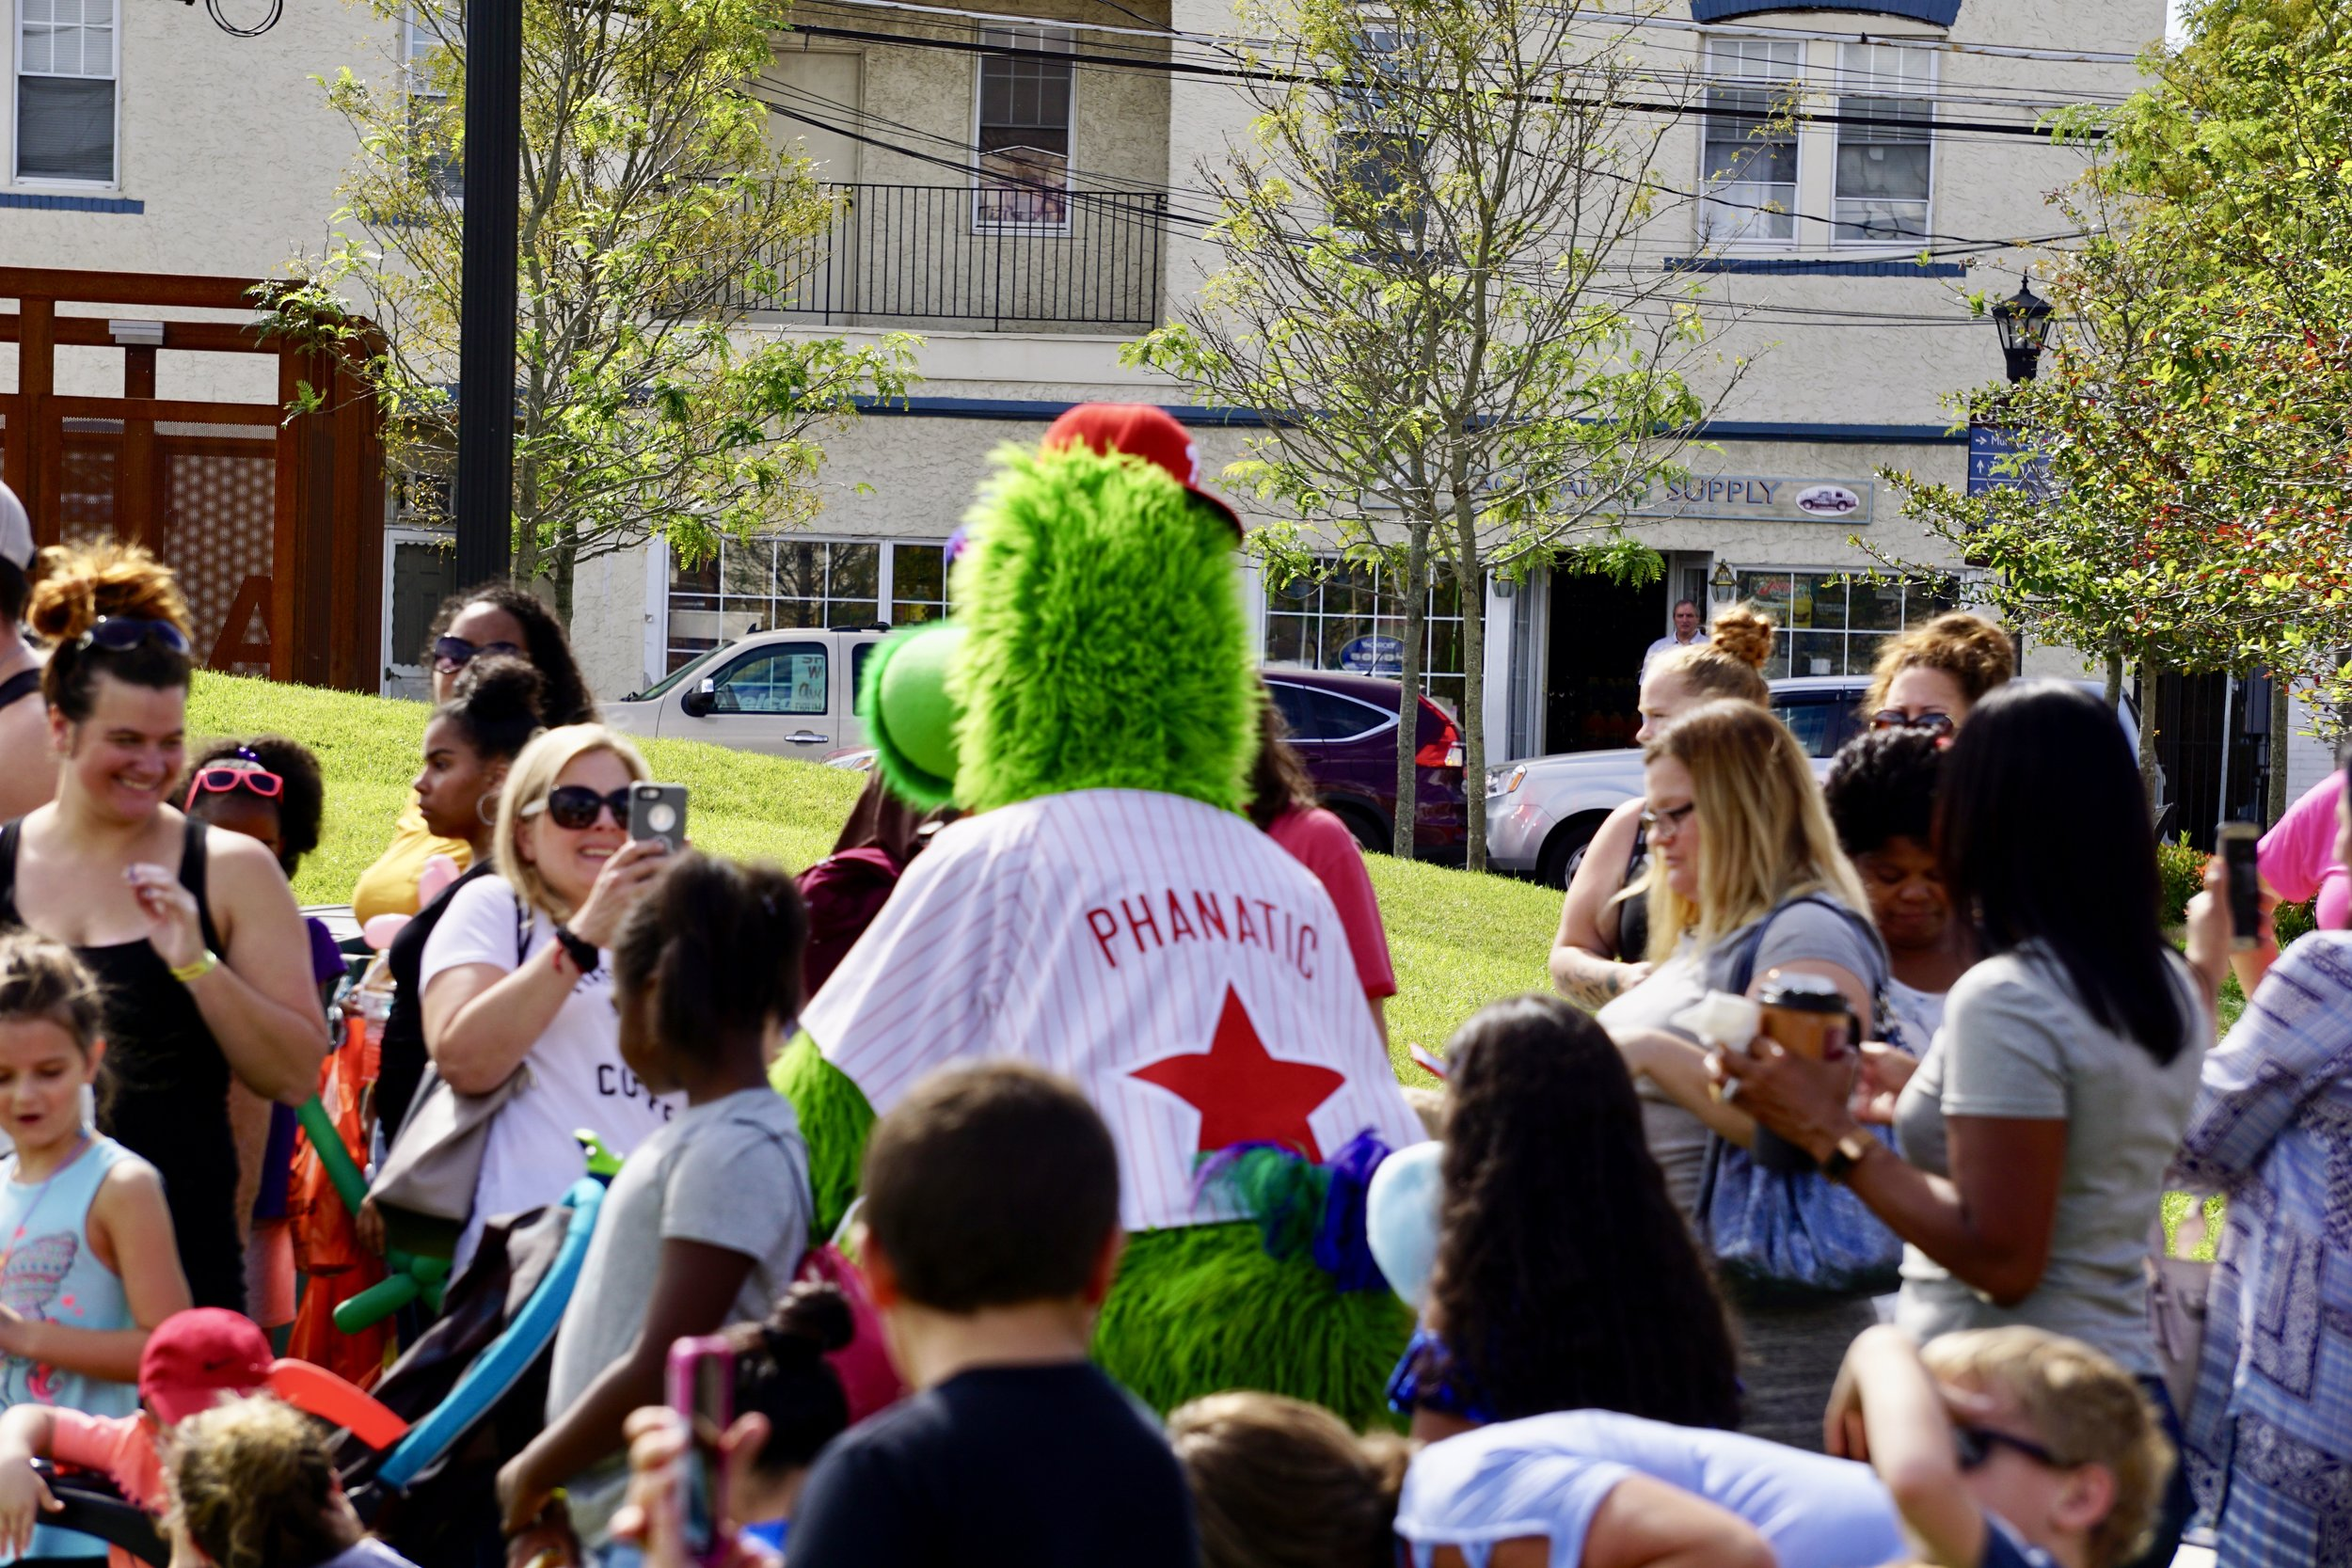 philly fanatic glassboro town square community day.jpeg